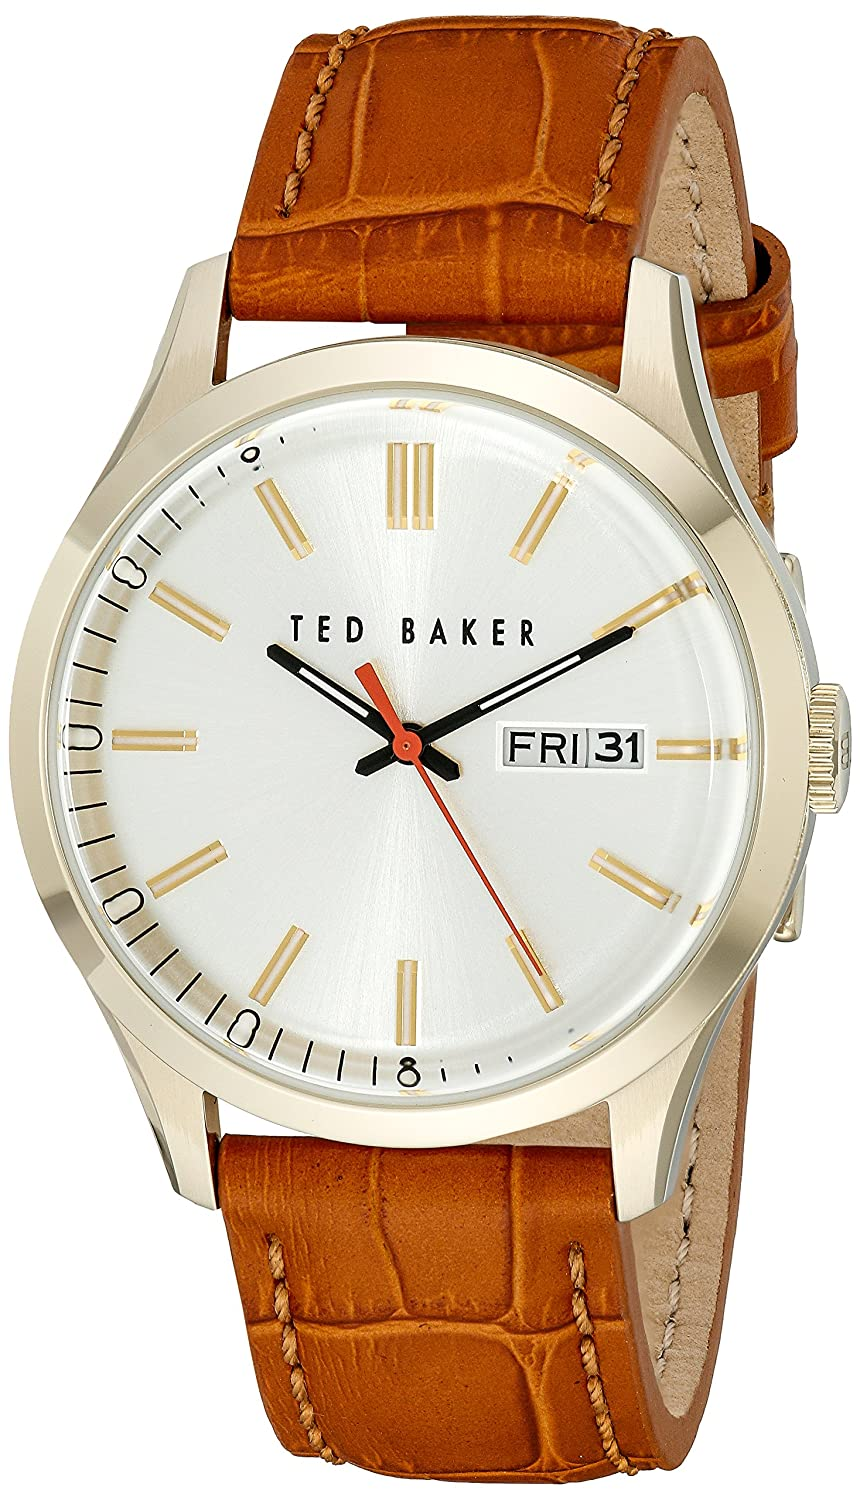 2e04df8364a6 Amazon.com  Ted Baker Men s 10023464 Dress Sport Analog Display Japanese  Quartz Brown Watch  Ted Baker  Watches